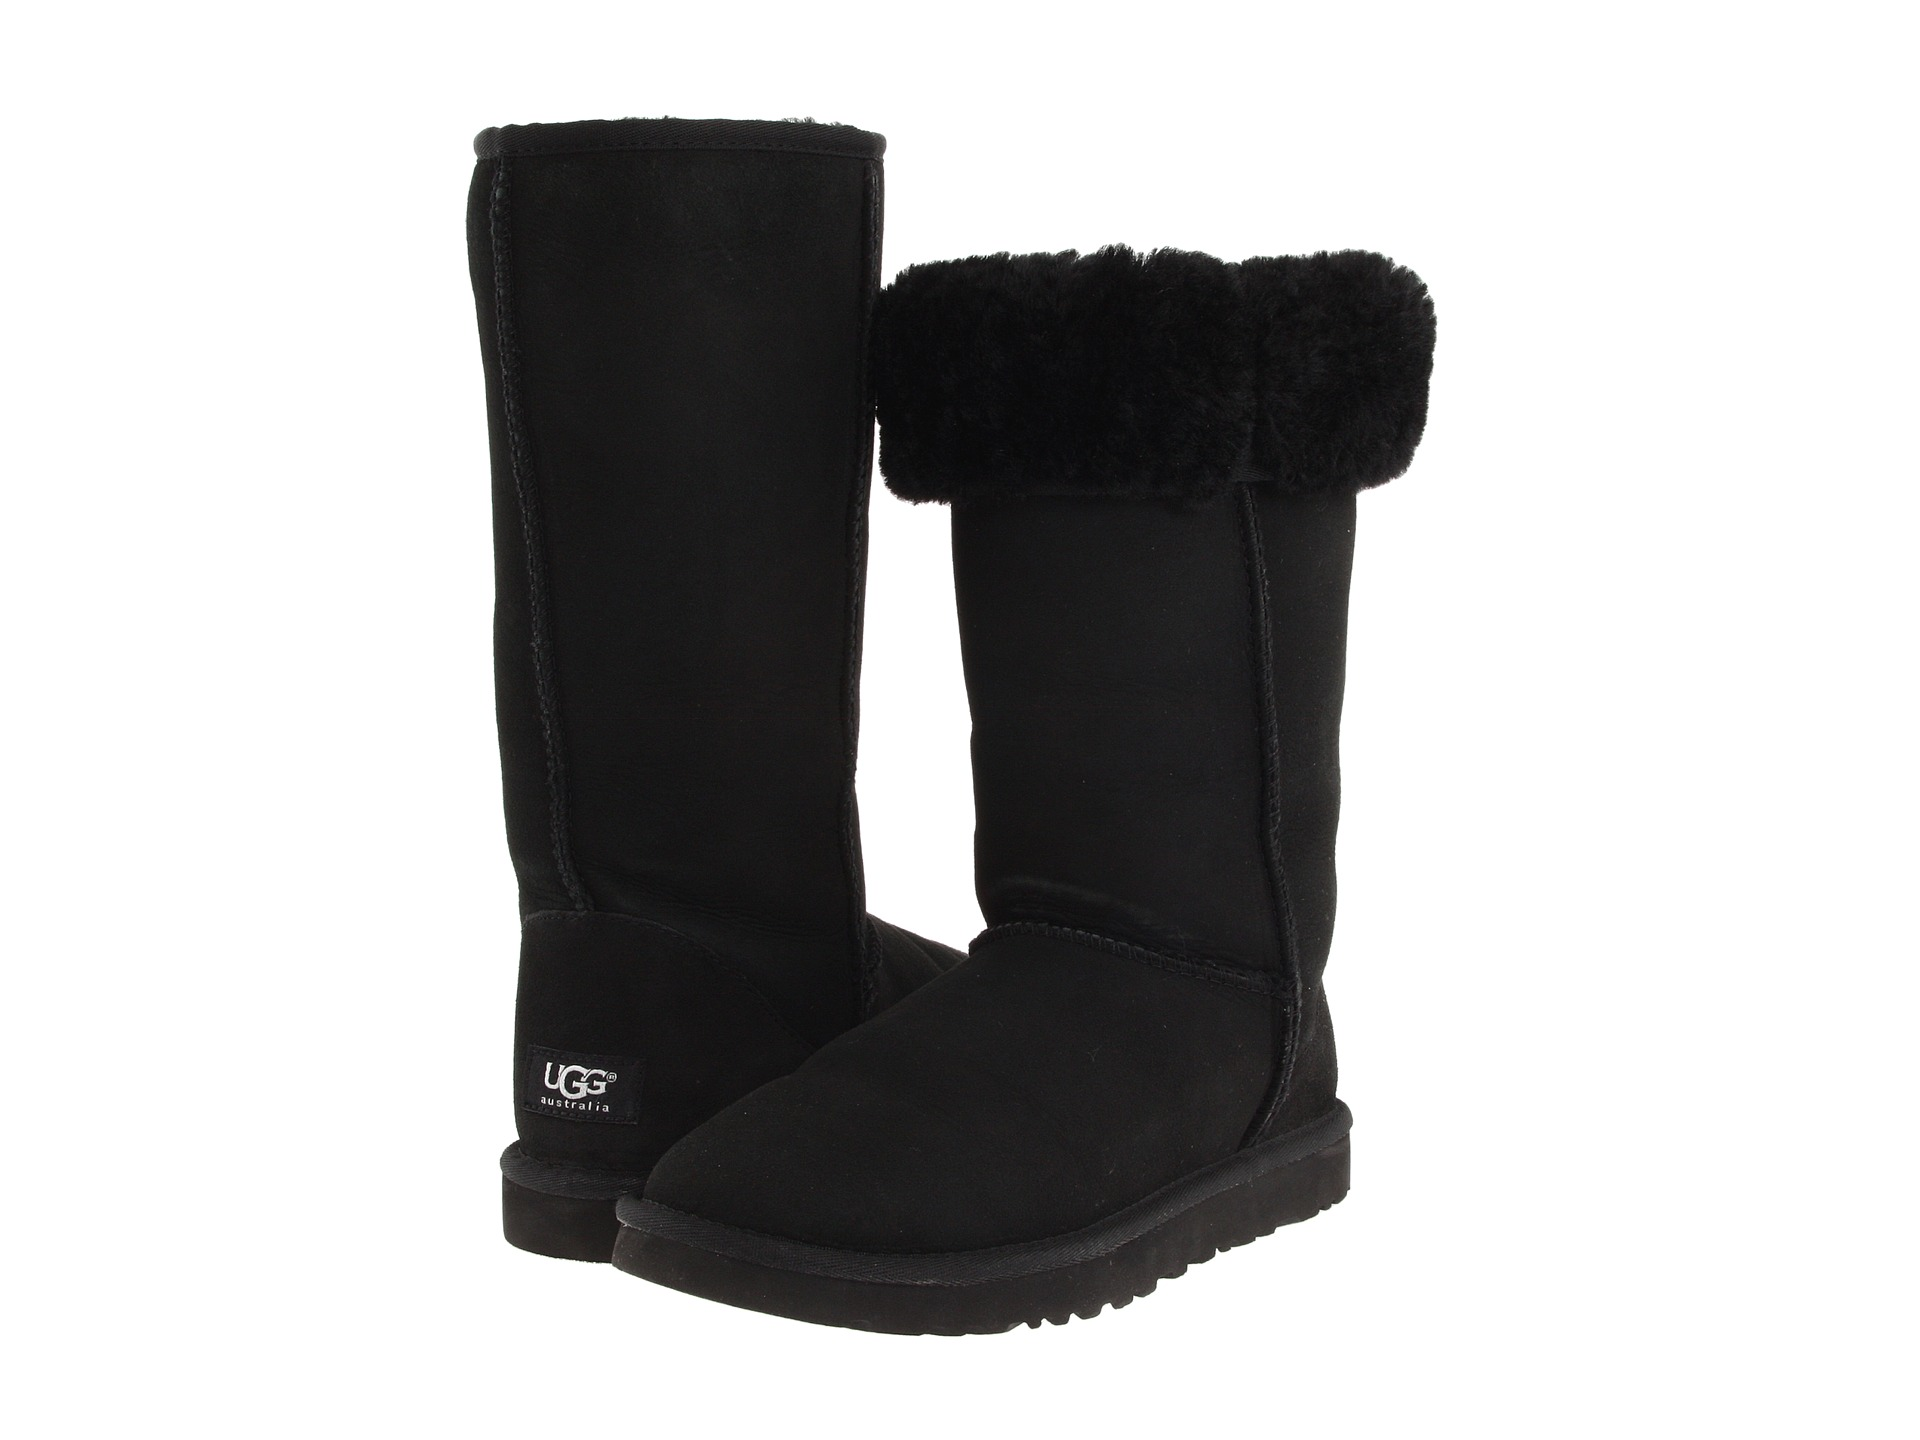 Ugg Classic Tall Zappos Com Free Shipping Both Ways